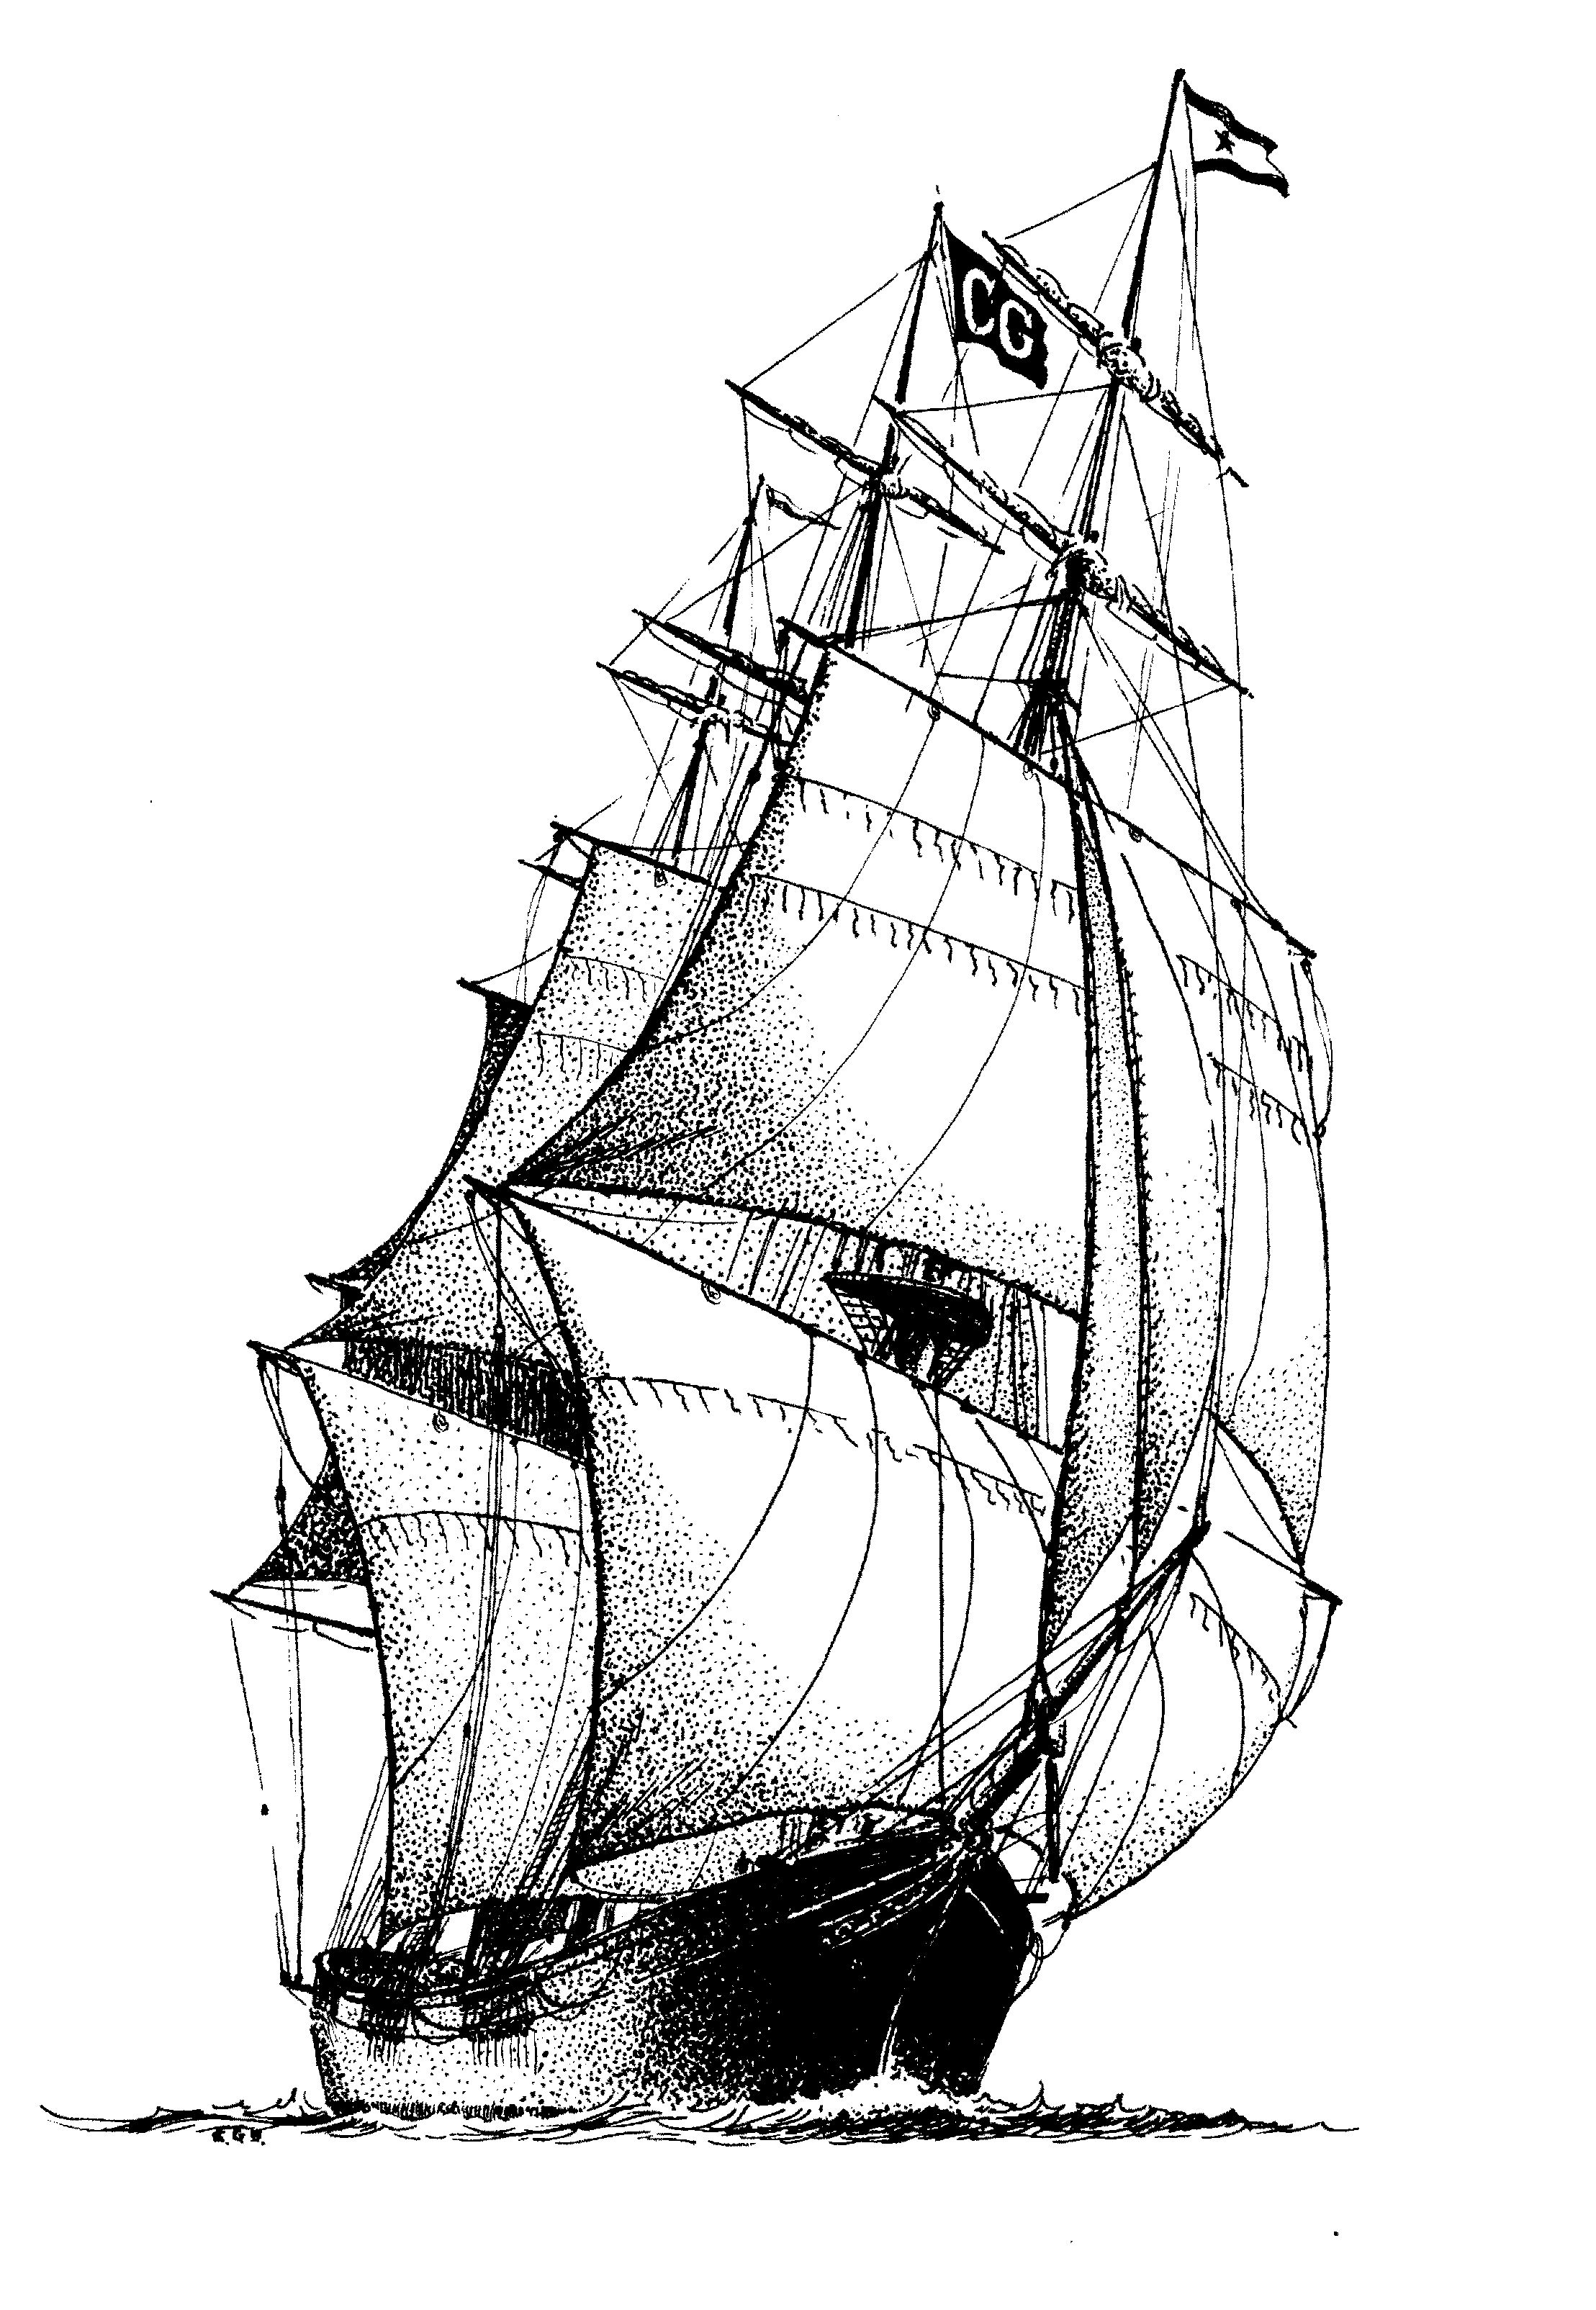 Pin By Cande Ferrario On Tattoo Ideas Ship Drawing Ship Paintings Boat Drawing